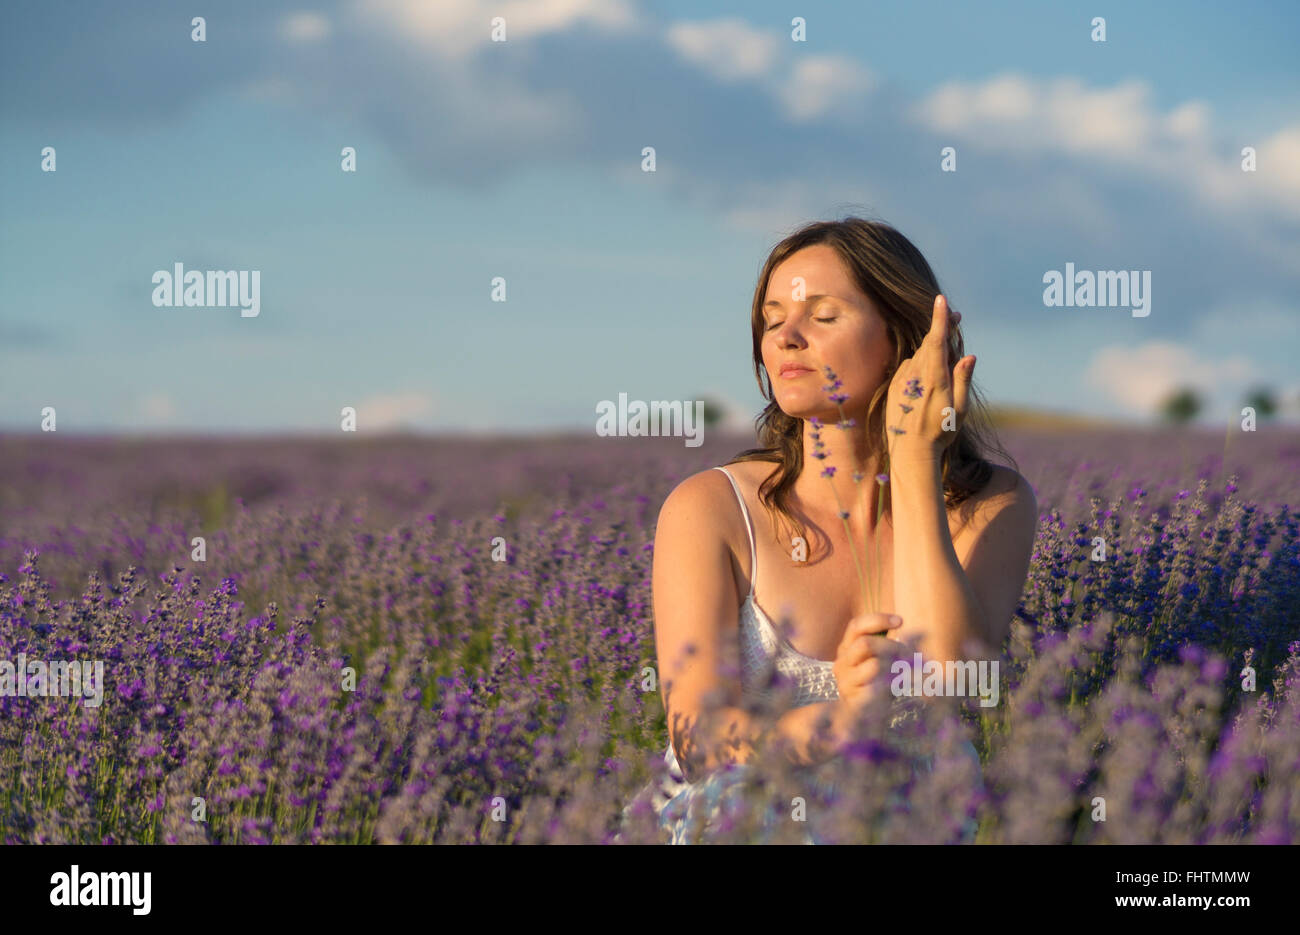 Beautiful young woman holding a bunch of lavender flowers enjoying their fragrance in the middle of a lavender field - Stock Image